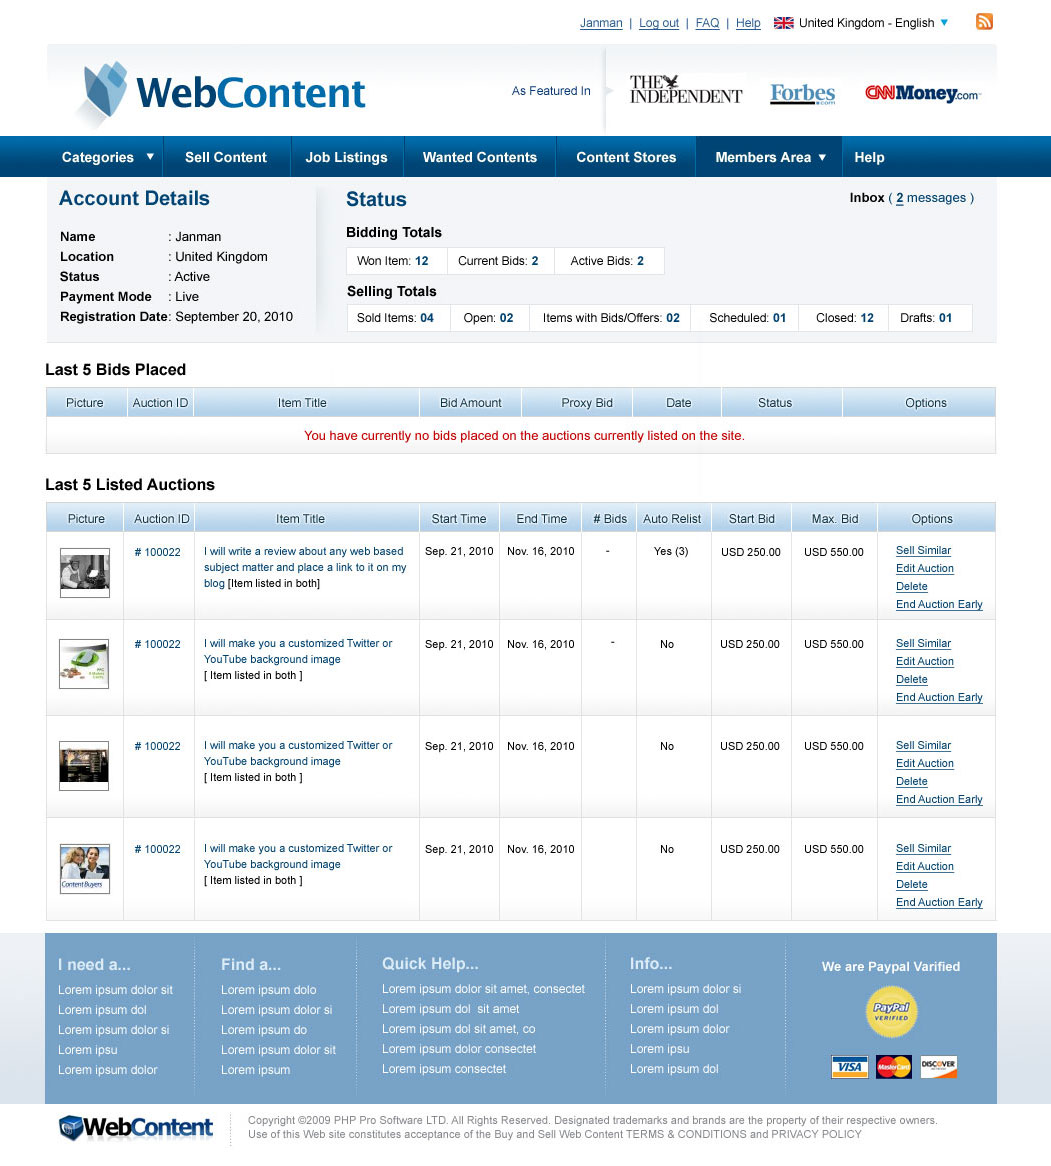 WebContent-Members-Page UI Design